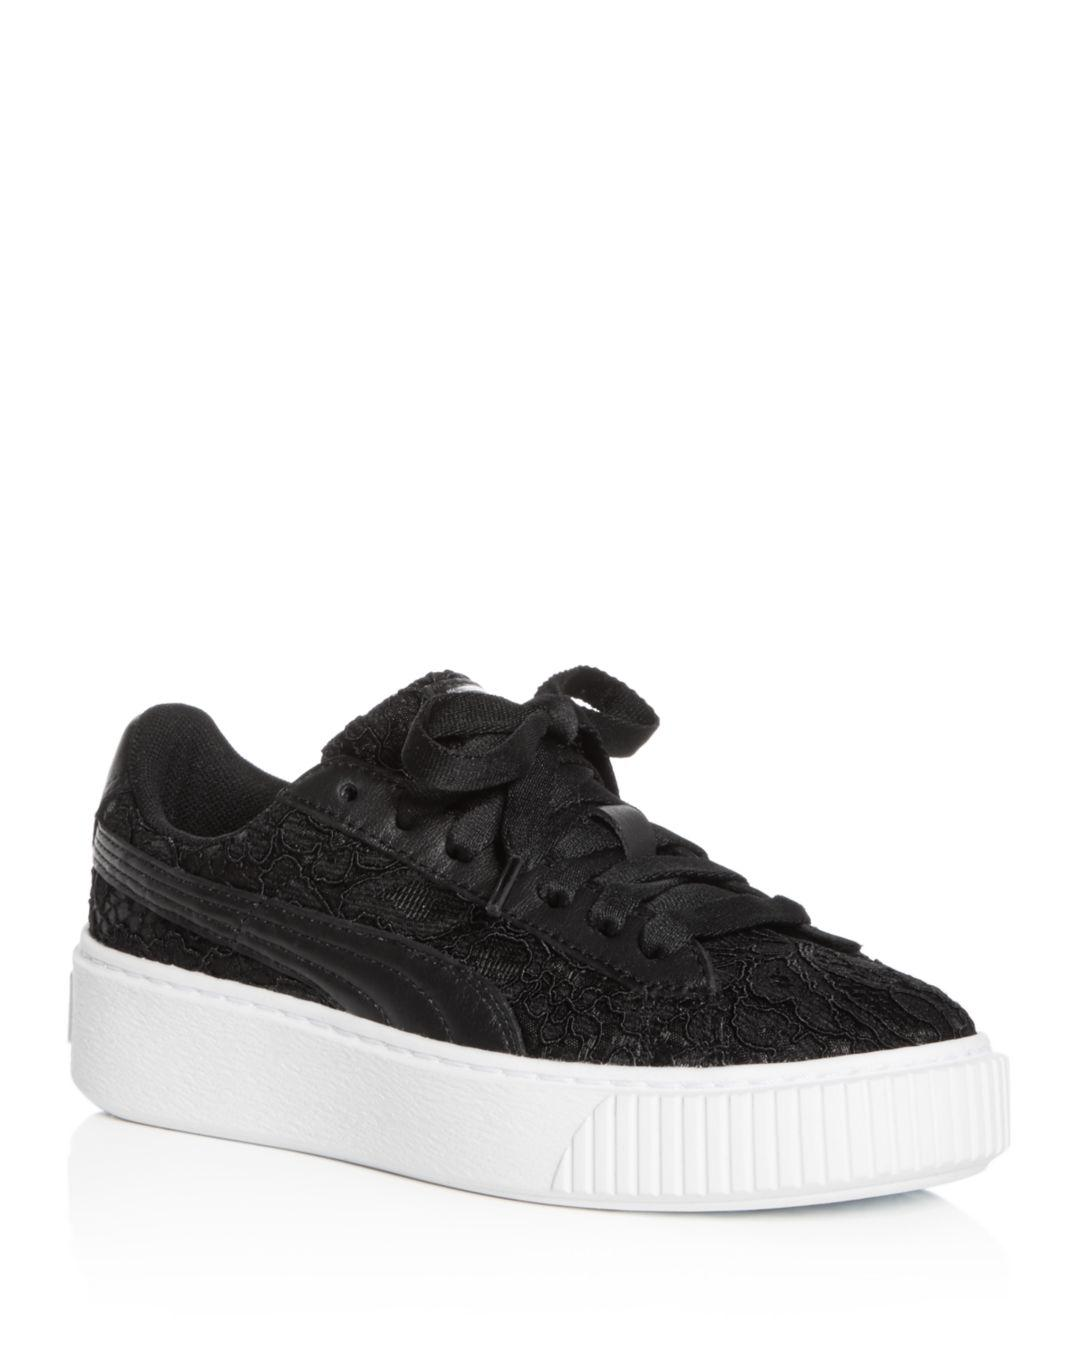 aea473ade40 Gallery. Previously sold at  Bloomingdale s · Women s Platform Sneakers Women s  Puma Classic ...